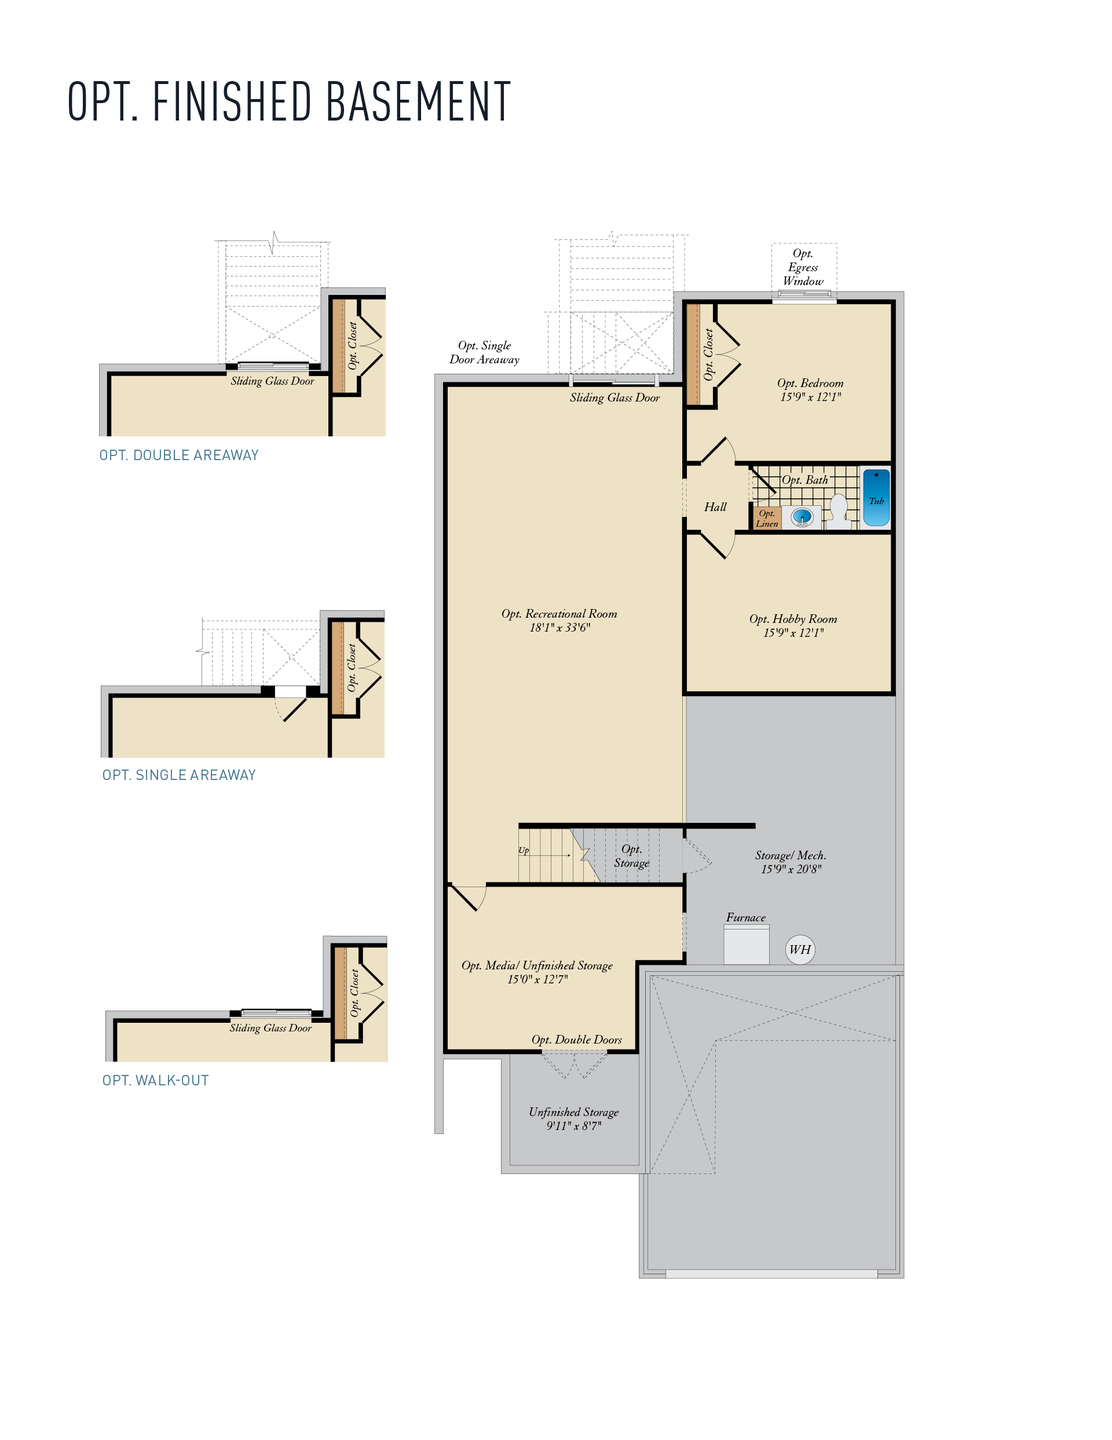 Opt. Lower Level. Hayes New Home Floor Plan